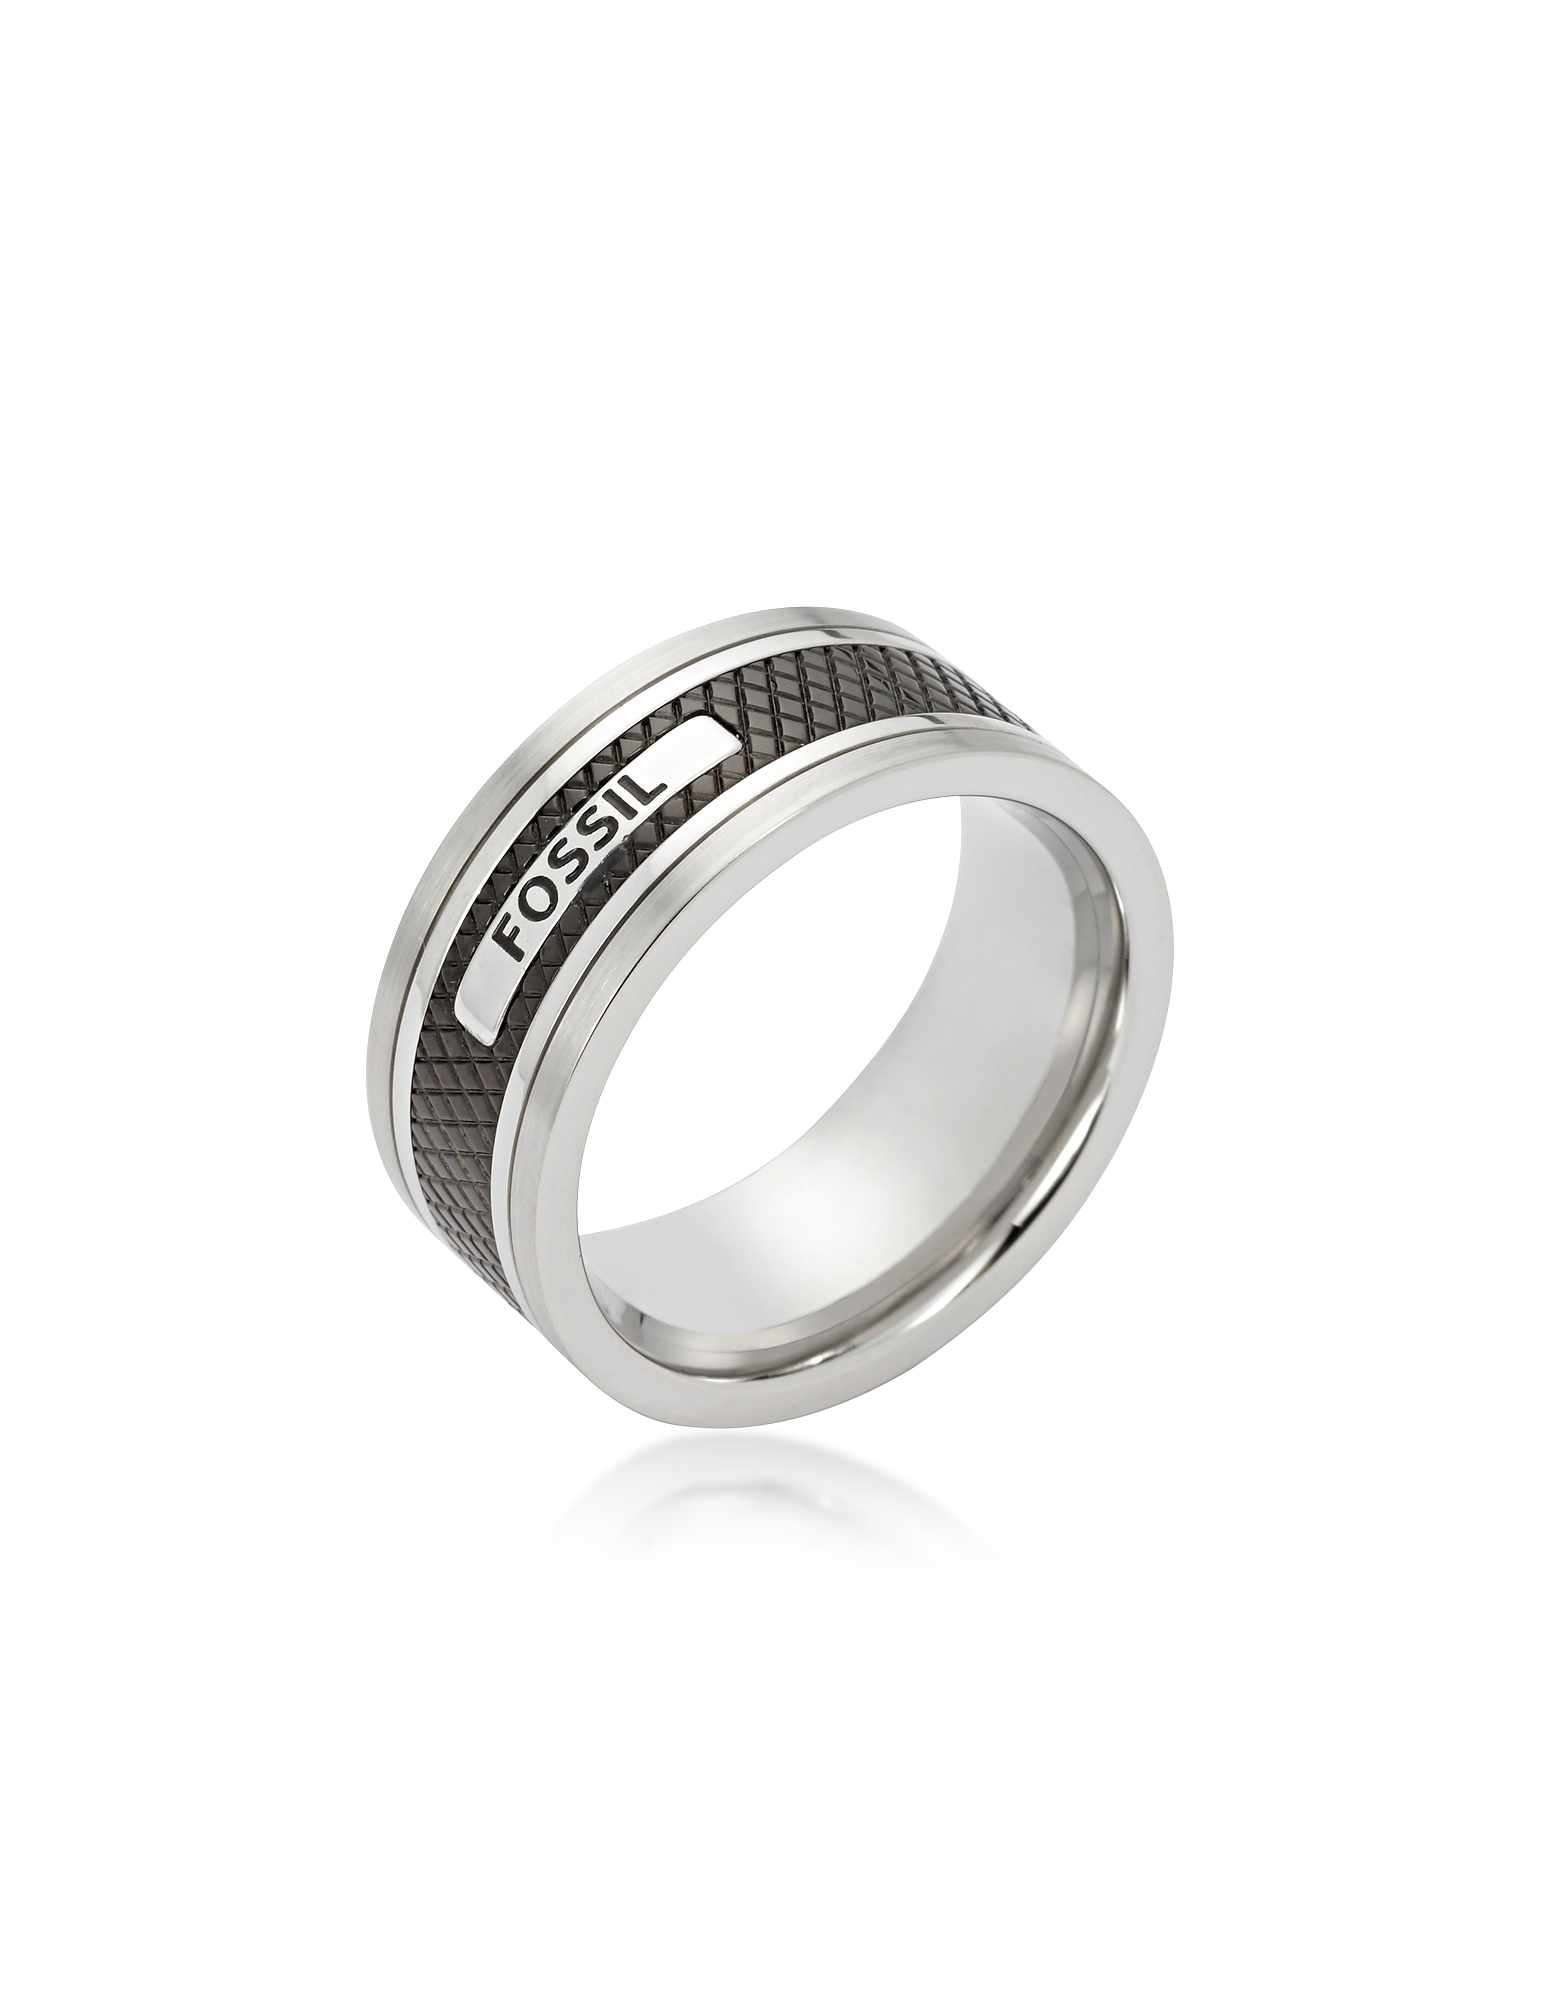 Stripe Textured Blackened Stainless Steel Men's Ring